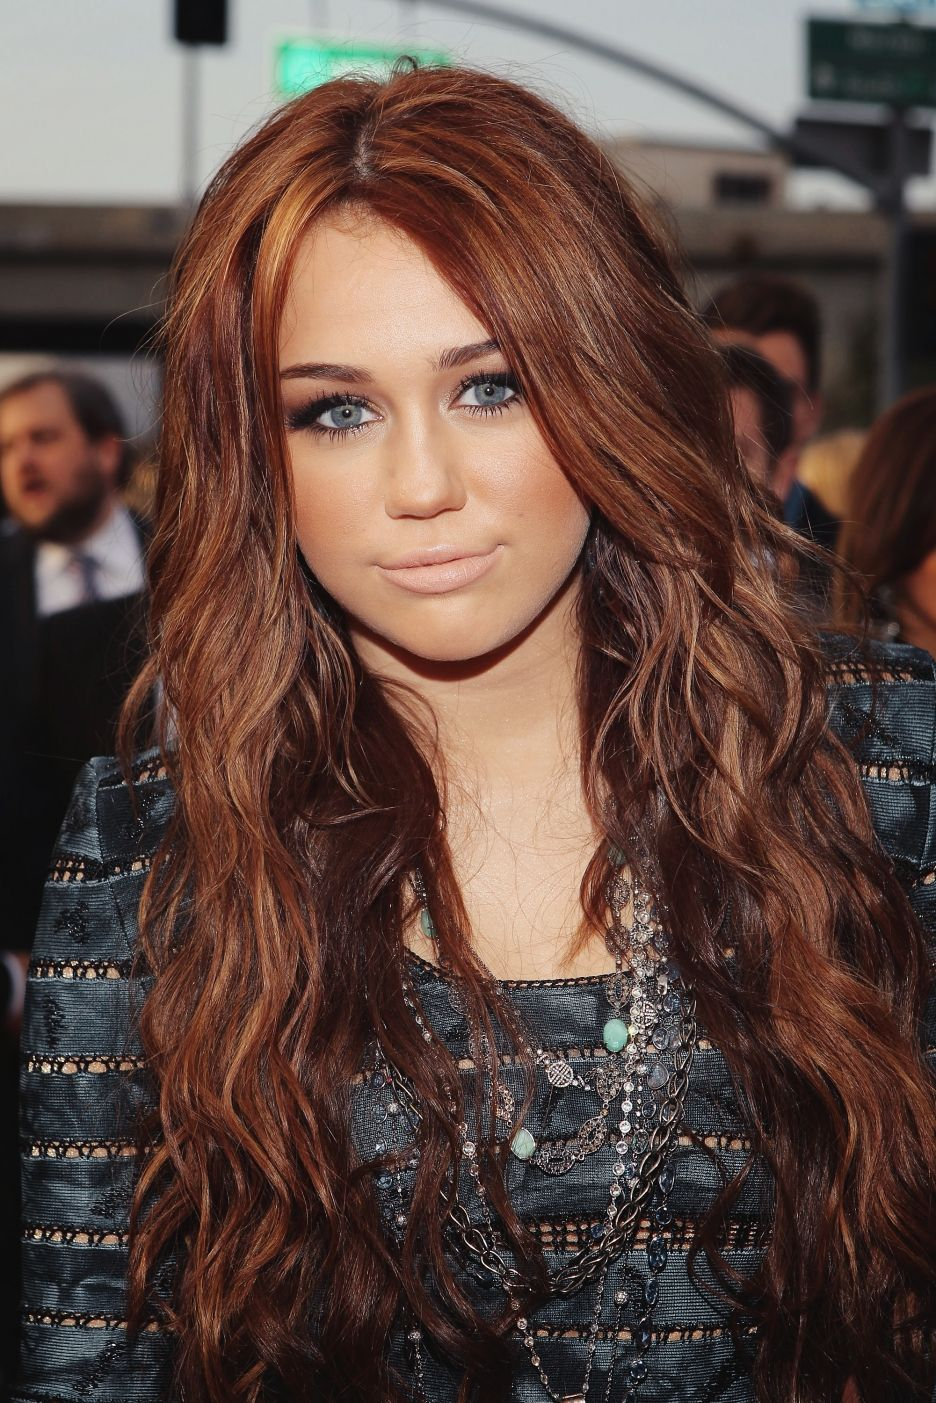 Miley Cyrus Love Her Hair Here Celebs Pinterest Hair Hair